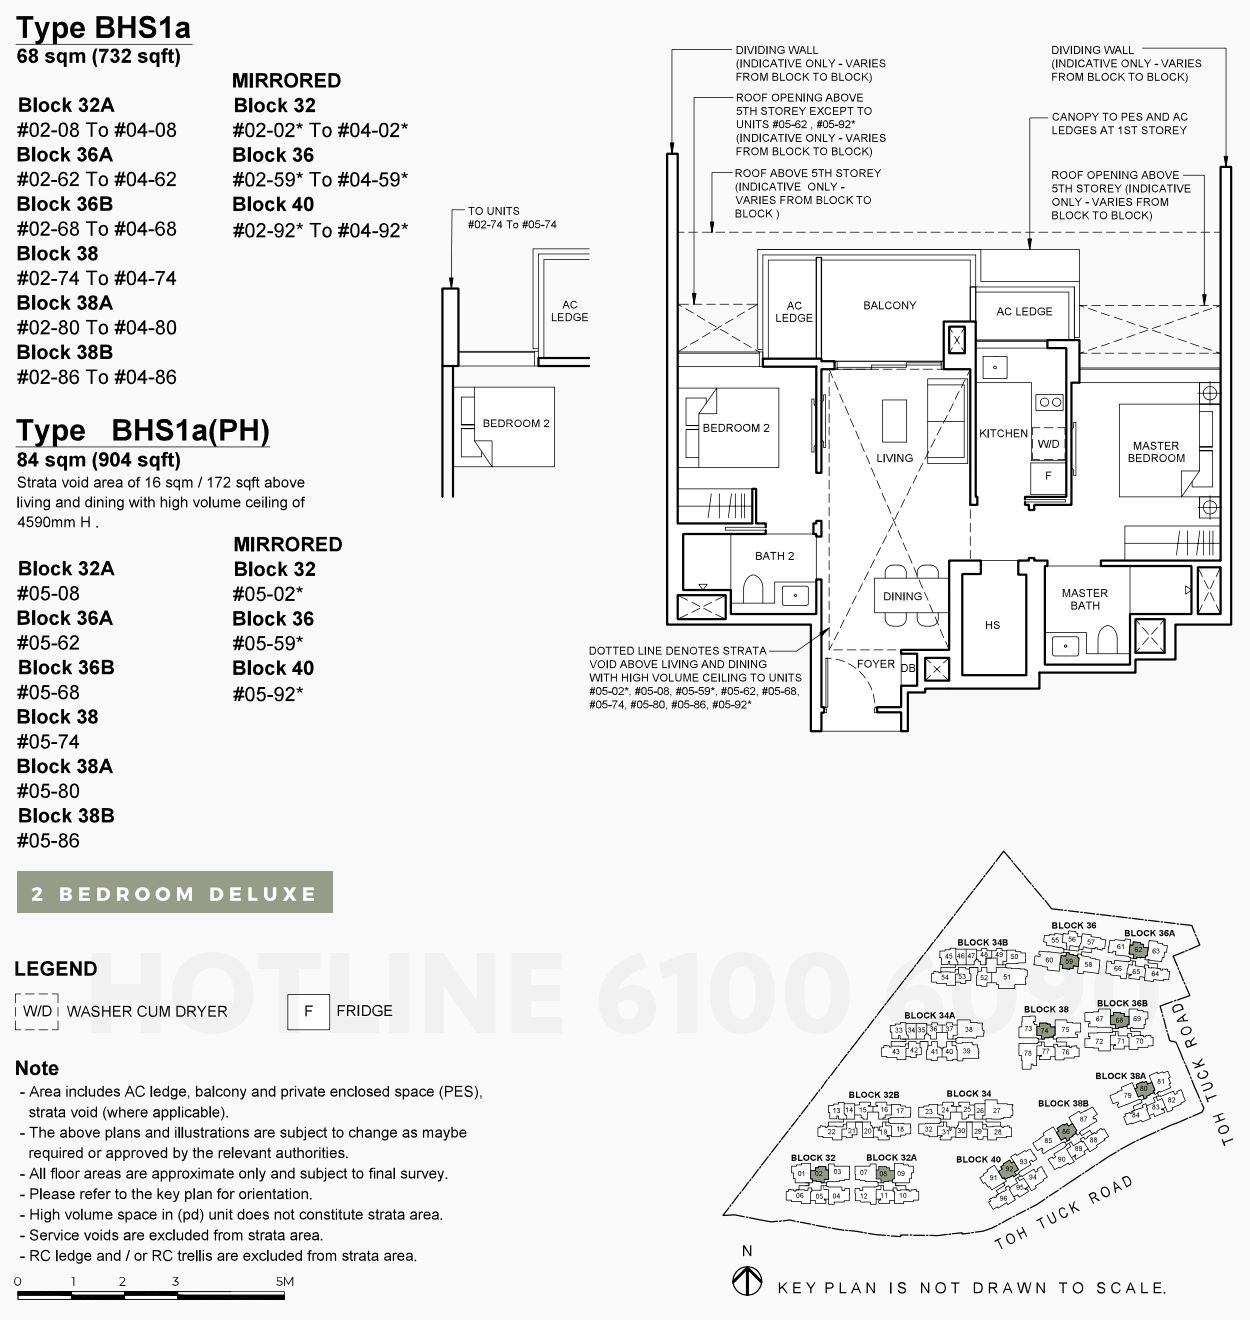 Forett Condo Floor Plans . 2 Bedroom Deluxe Type BHS1a